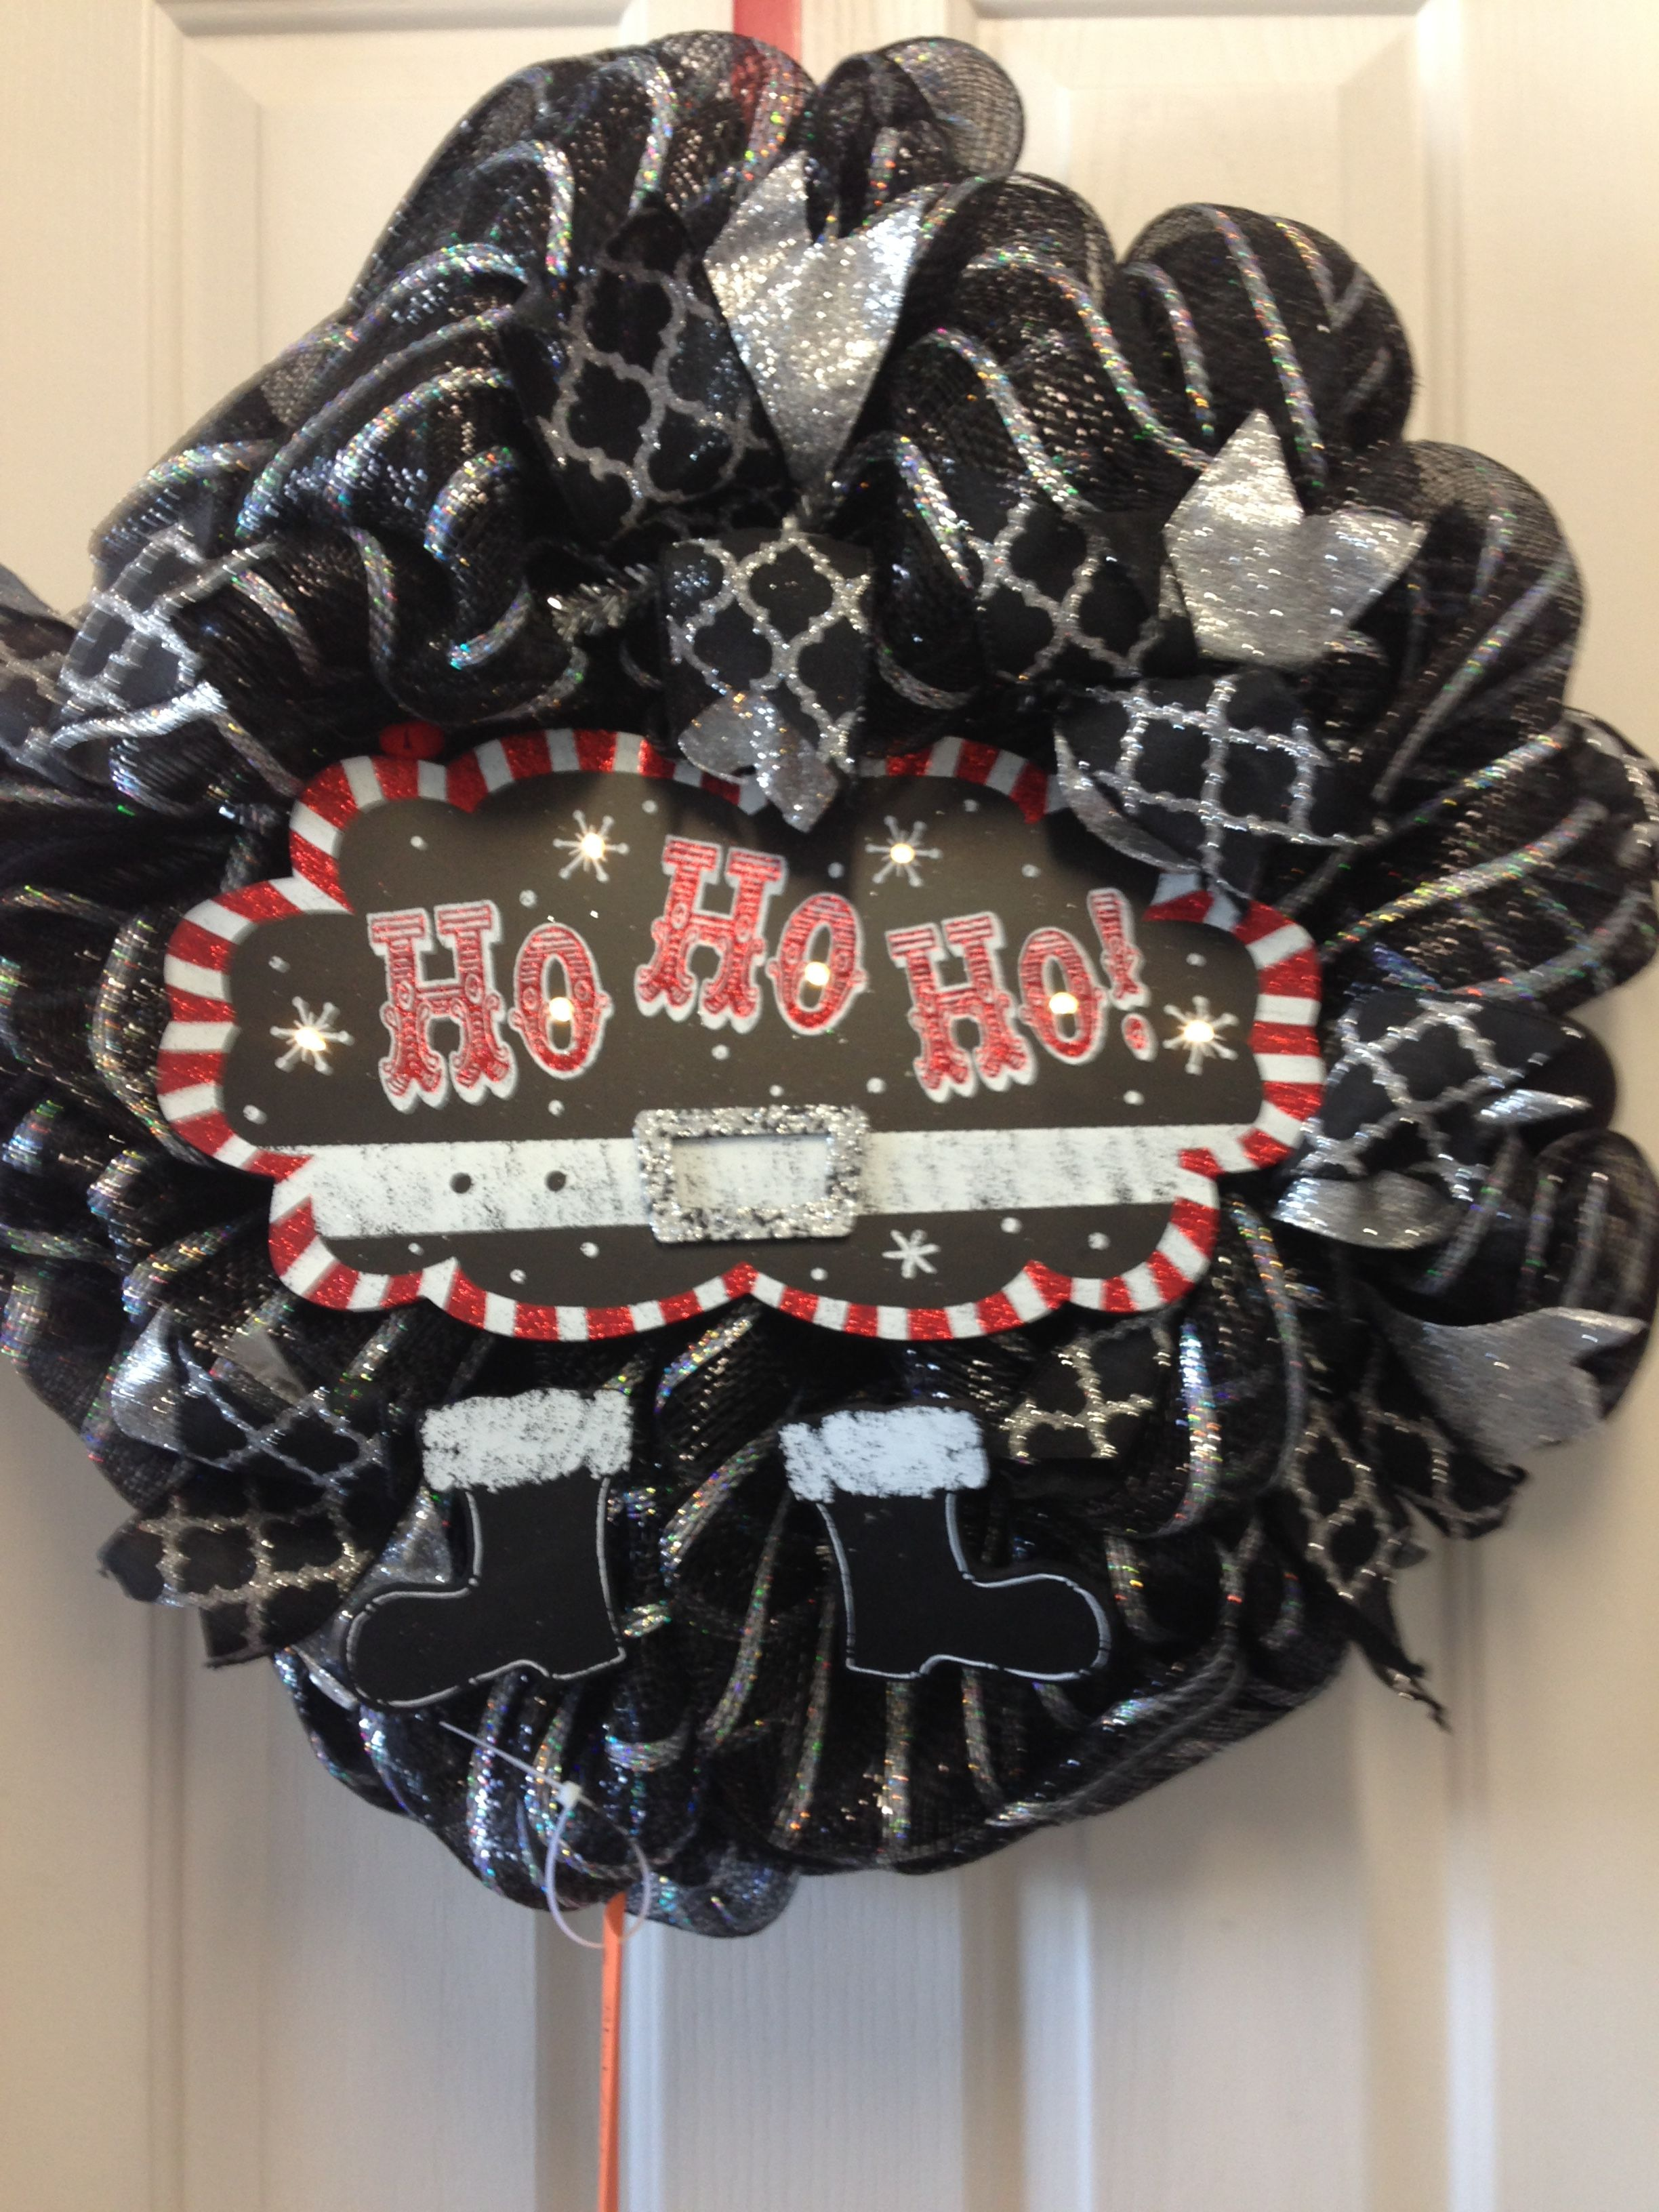 Light up ho ho ho sign black silver mesh wreath now available on https://m.facebook.com/INTOCHRISTMAS/